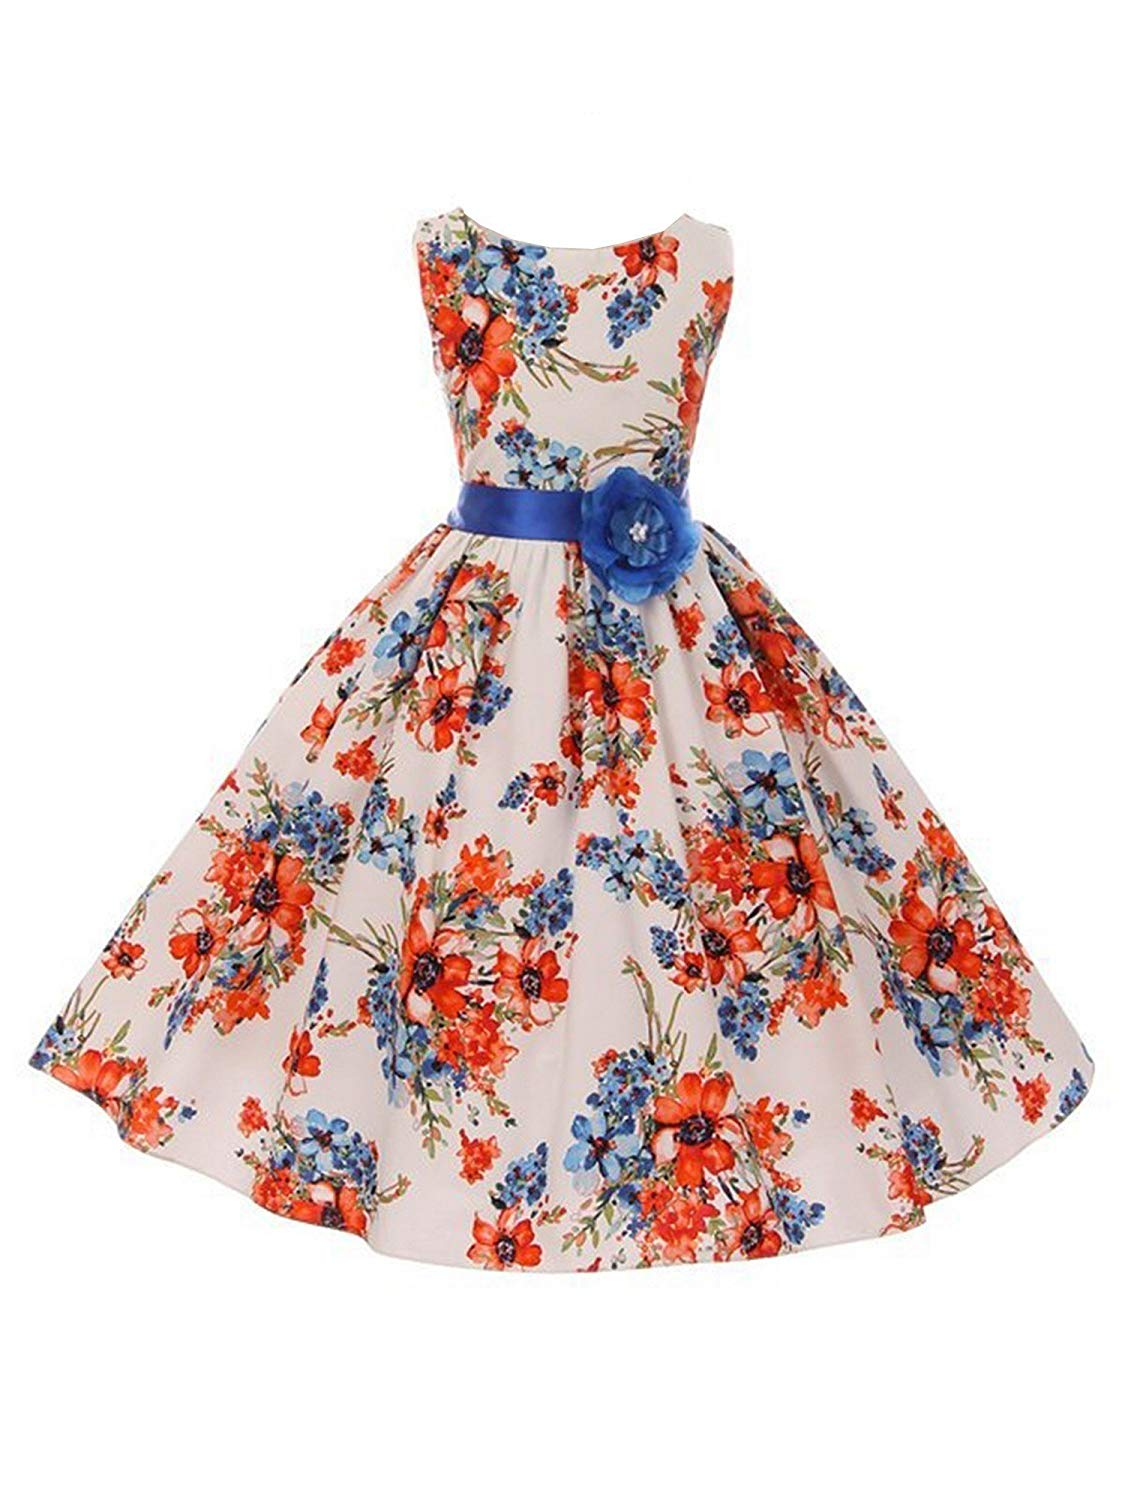 Cheap Blue And White Floral Print Dress Find Blue And White Floral